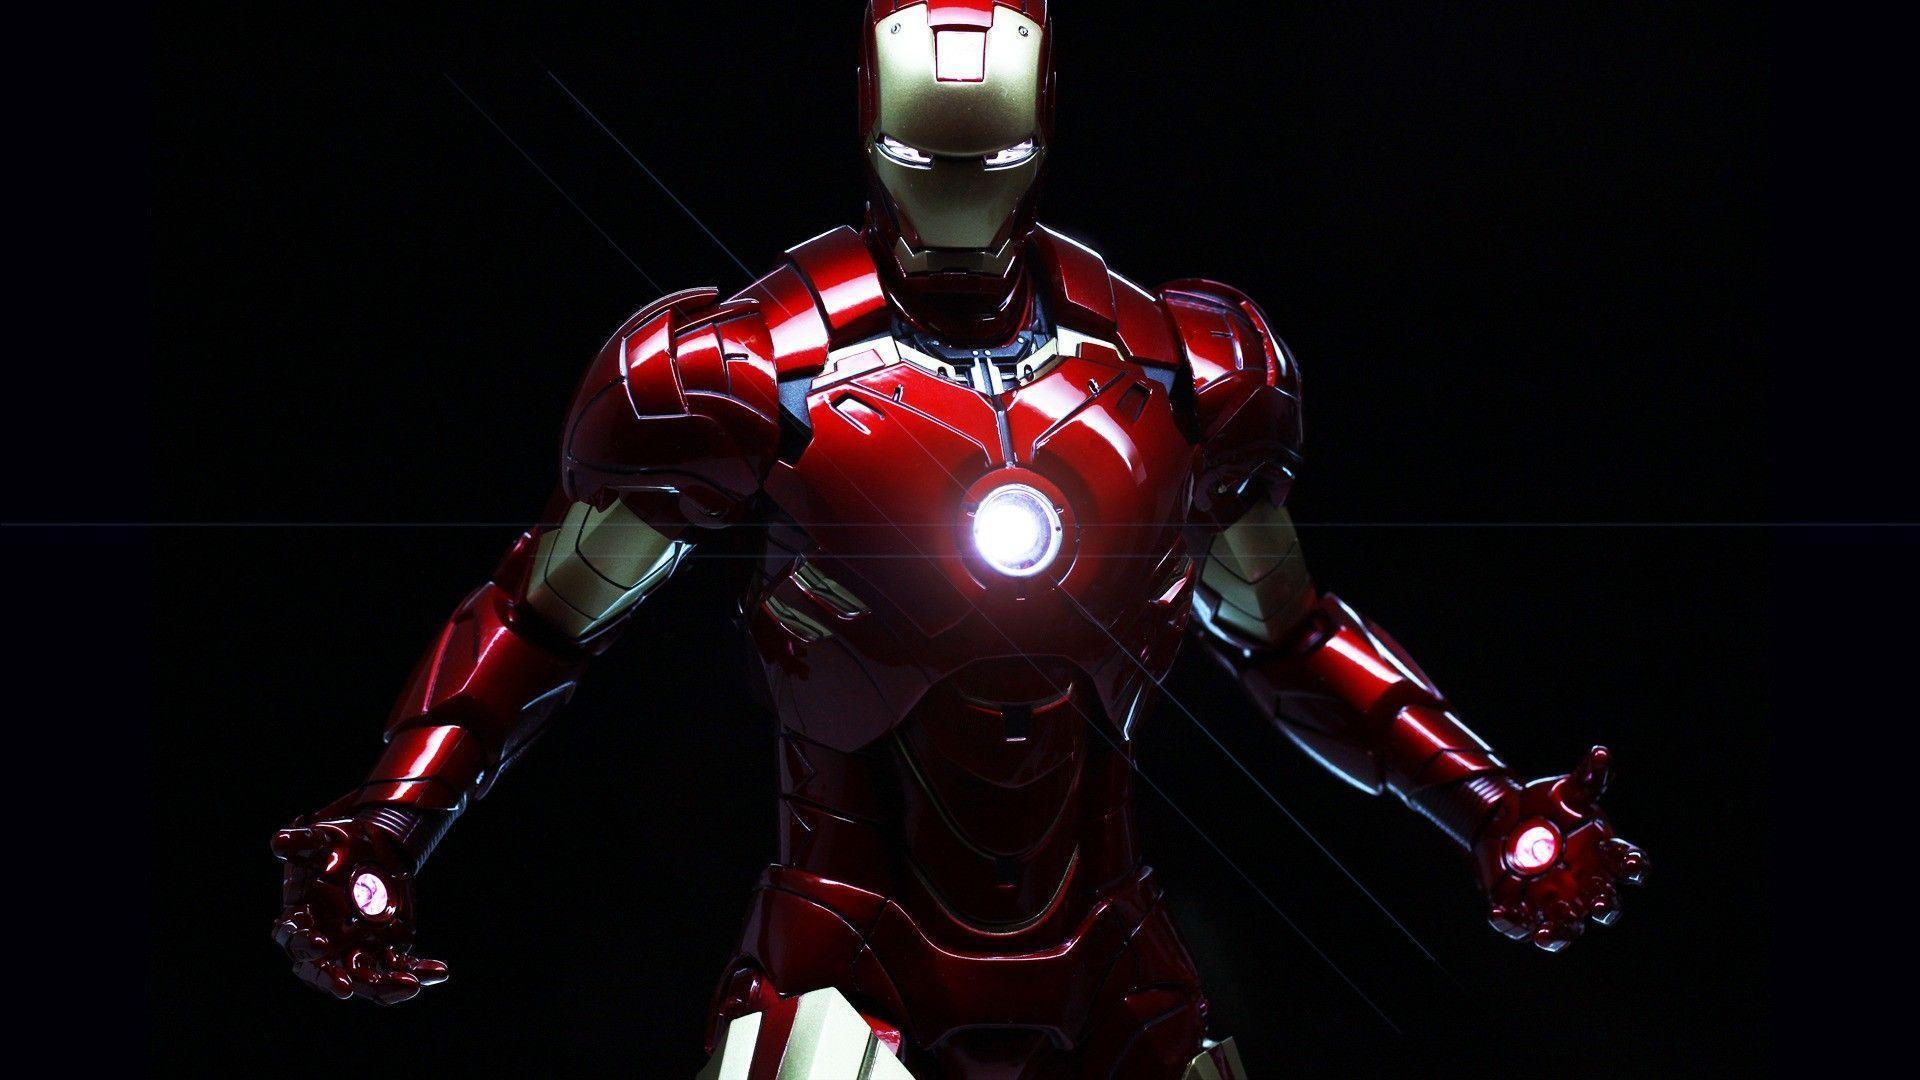 all iron man suits wallpaper - photo #11